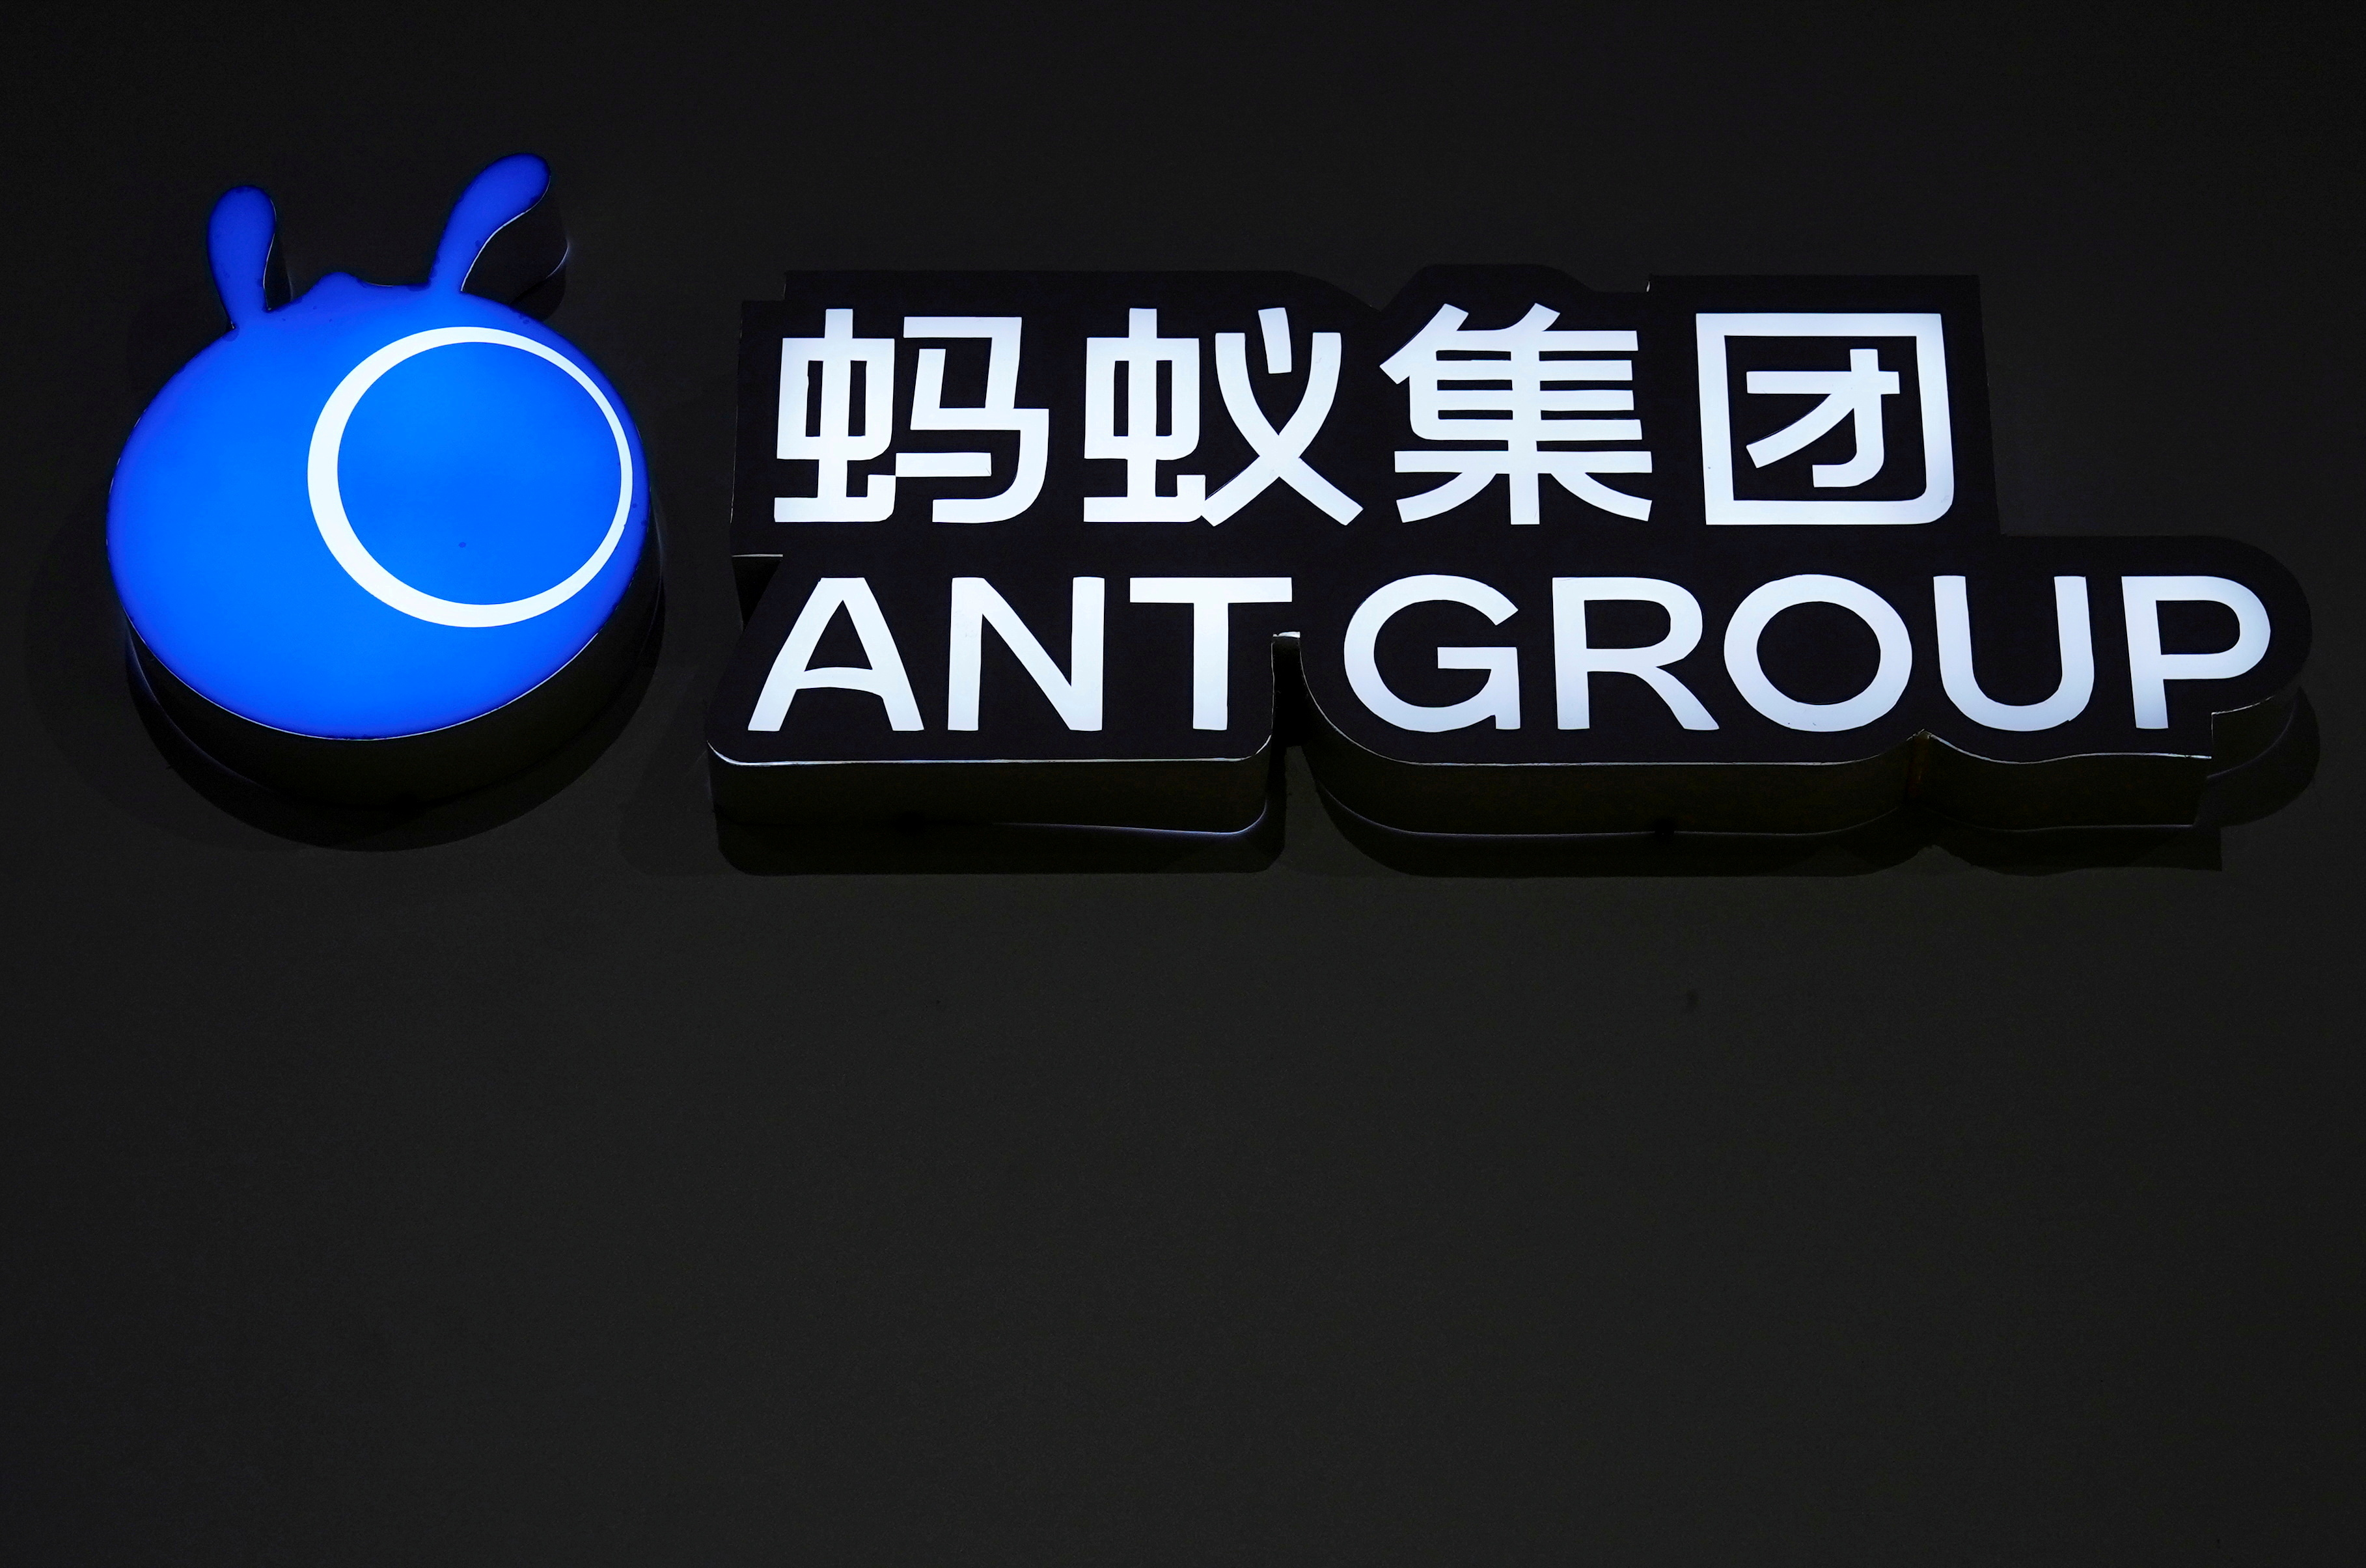 A sign of Ant Group is seen during the World Internet Conference in Wuzhen, Zhejiang province, China, Nov. 23, 2020. REUTERS/Aly Song/File Photo